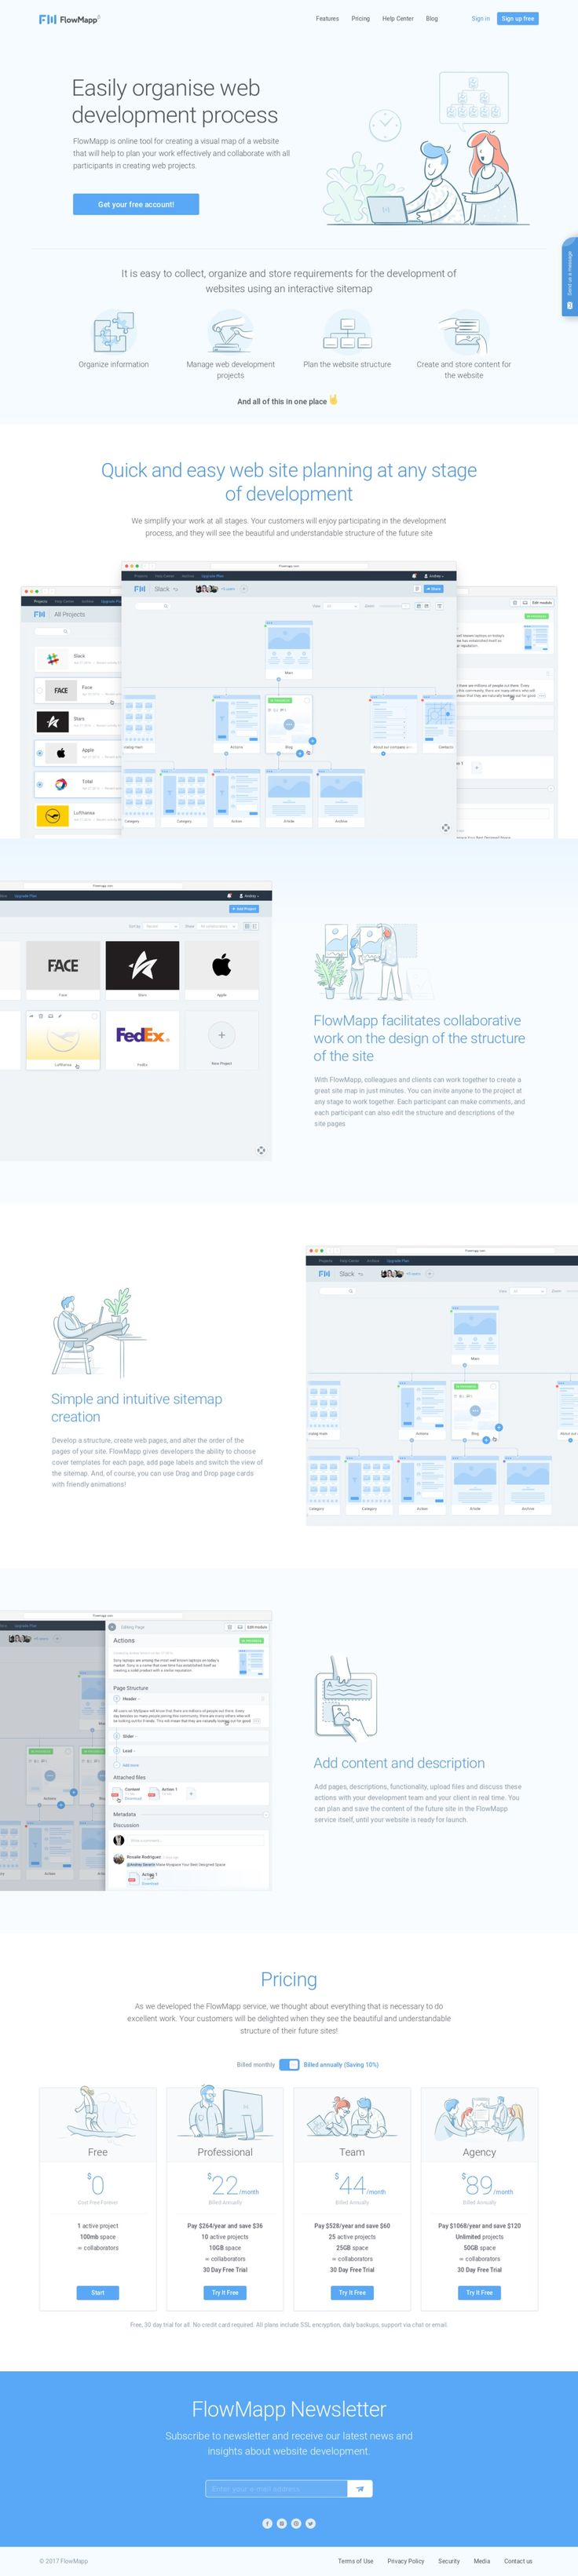 FlowMapp – Powerful visual sitemap tool for planning website development and collaborate with others